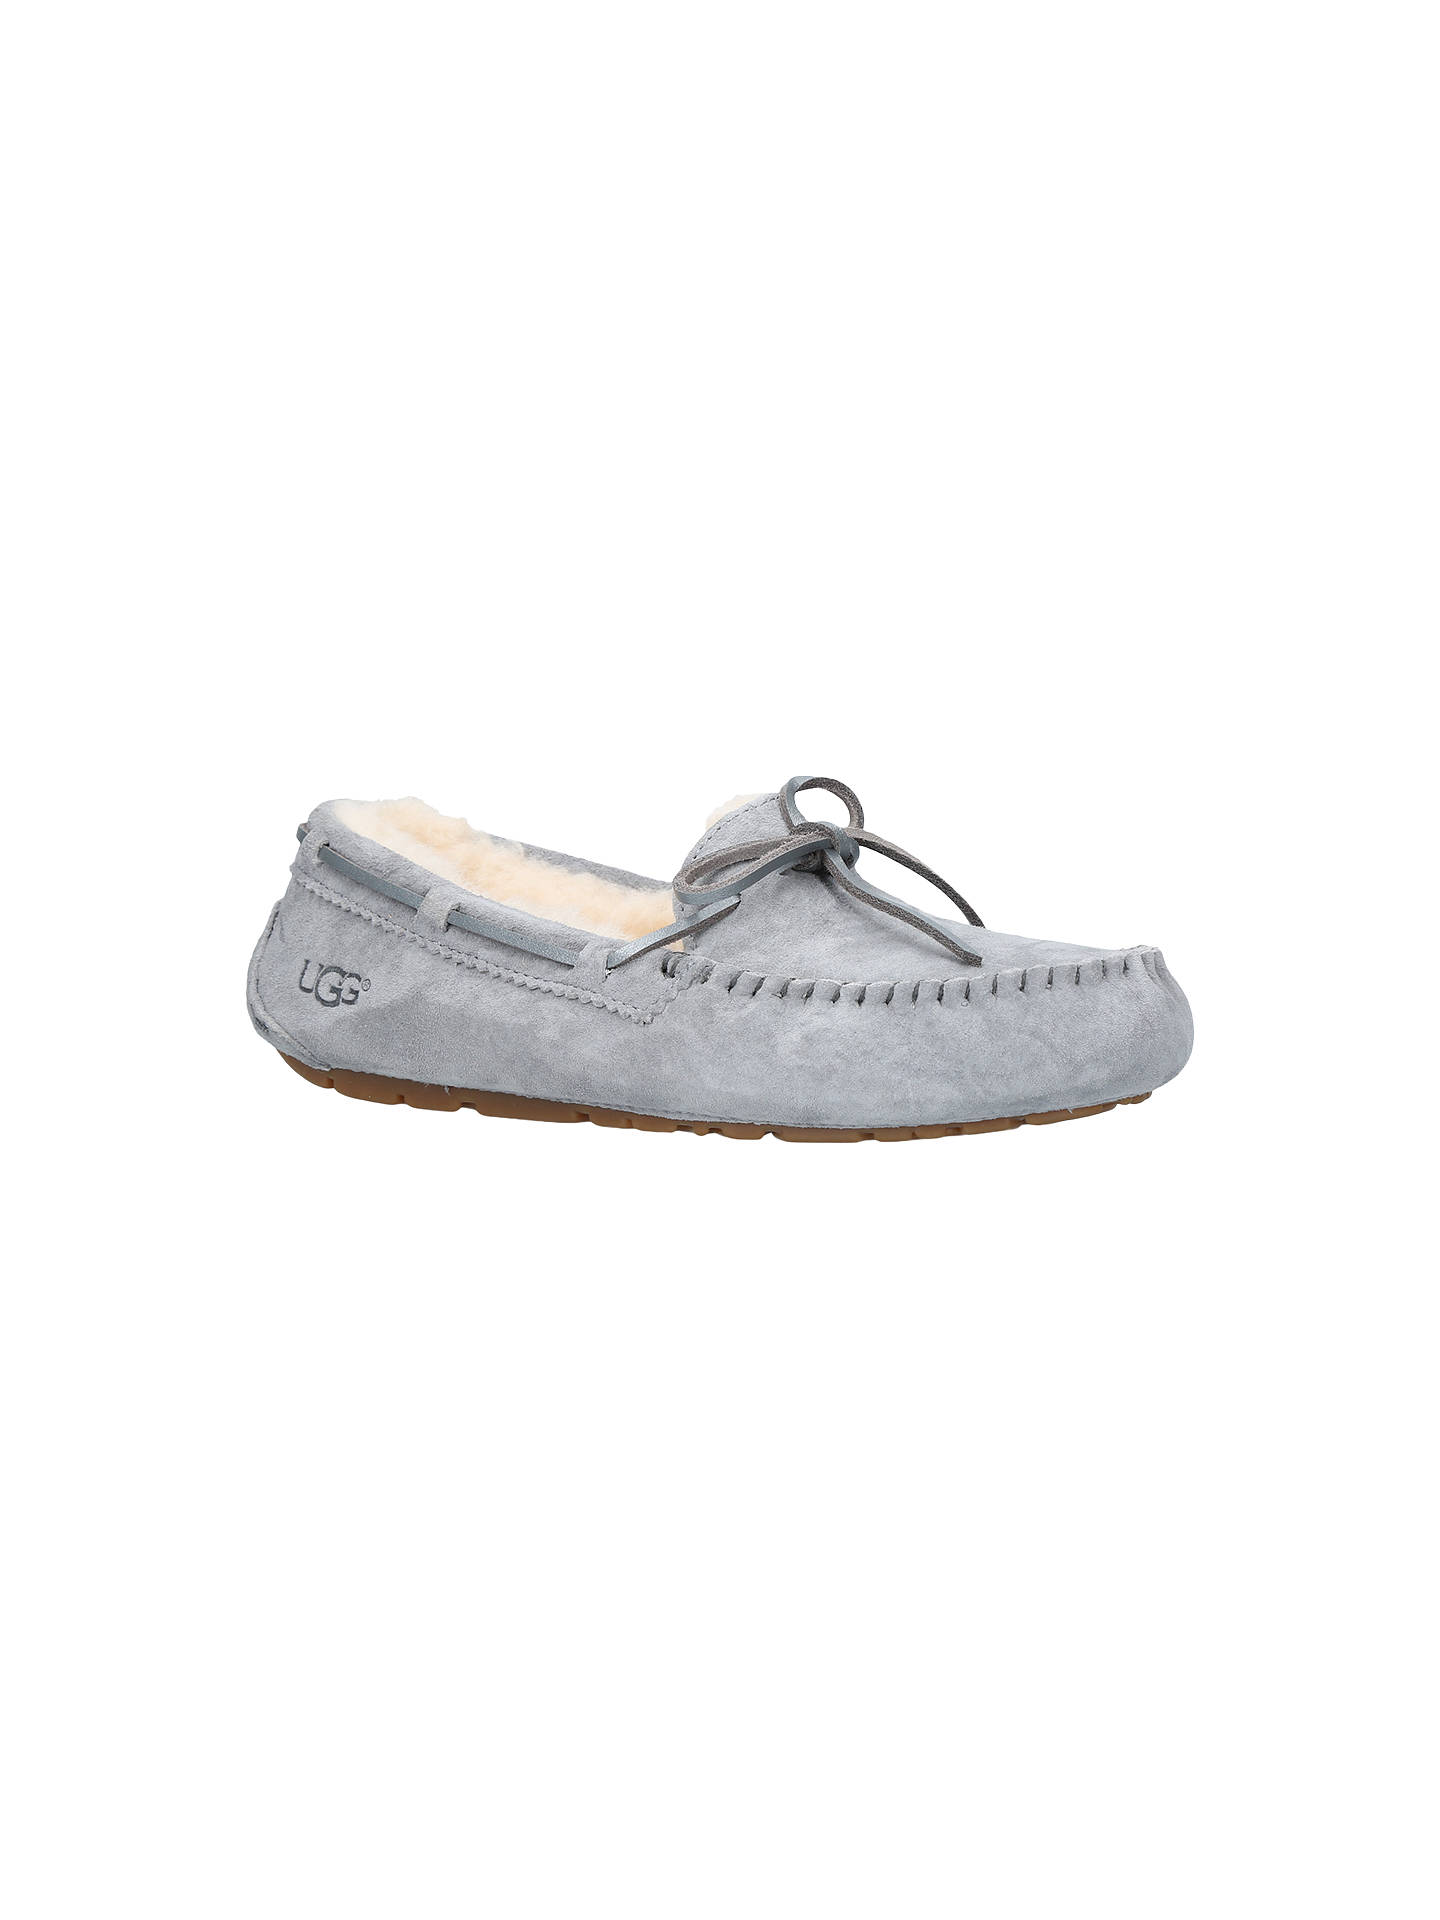 2ea64ad1179 UGG Dakota Sheepskin Moccasin Slippers, Grey at John Lewis & Partners